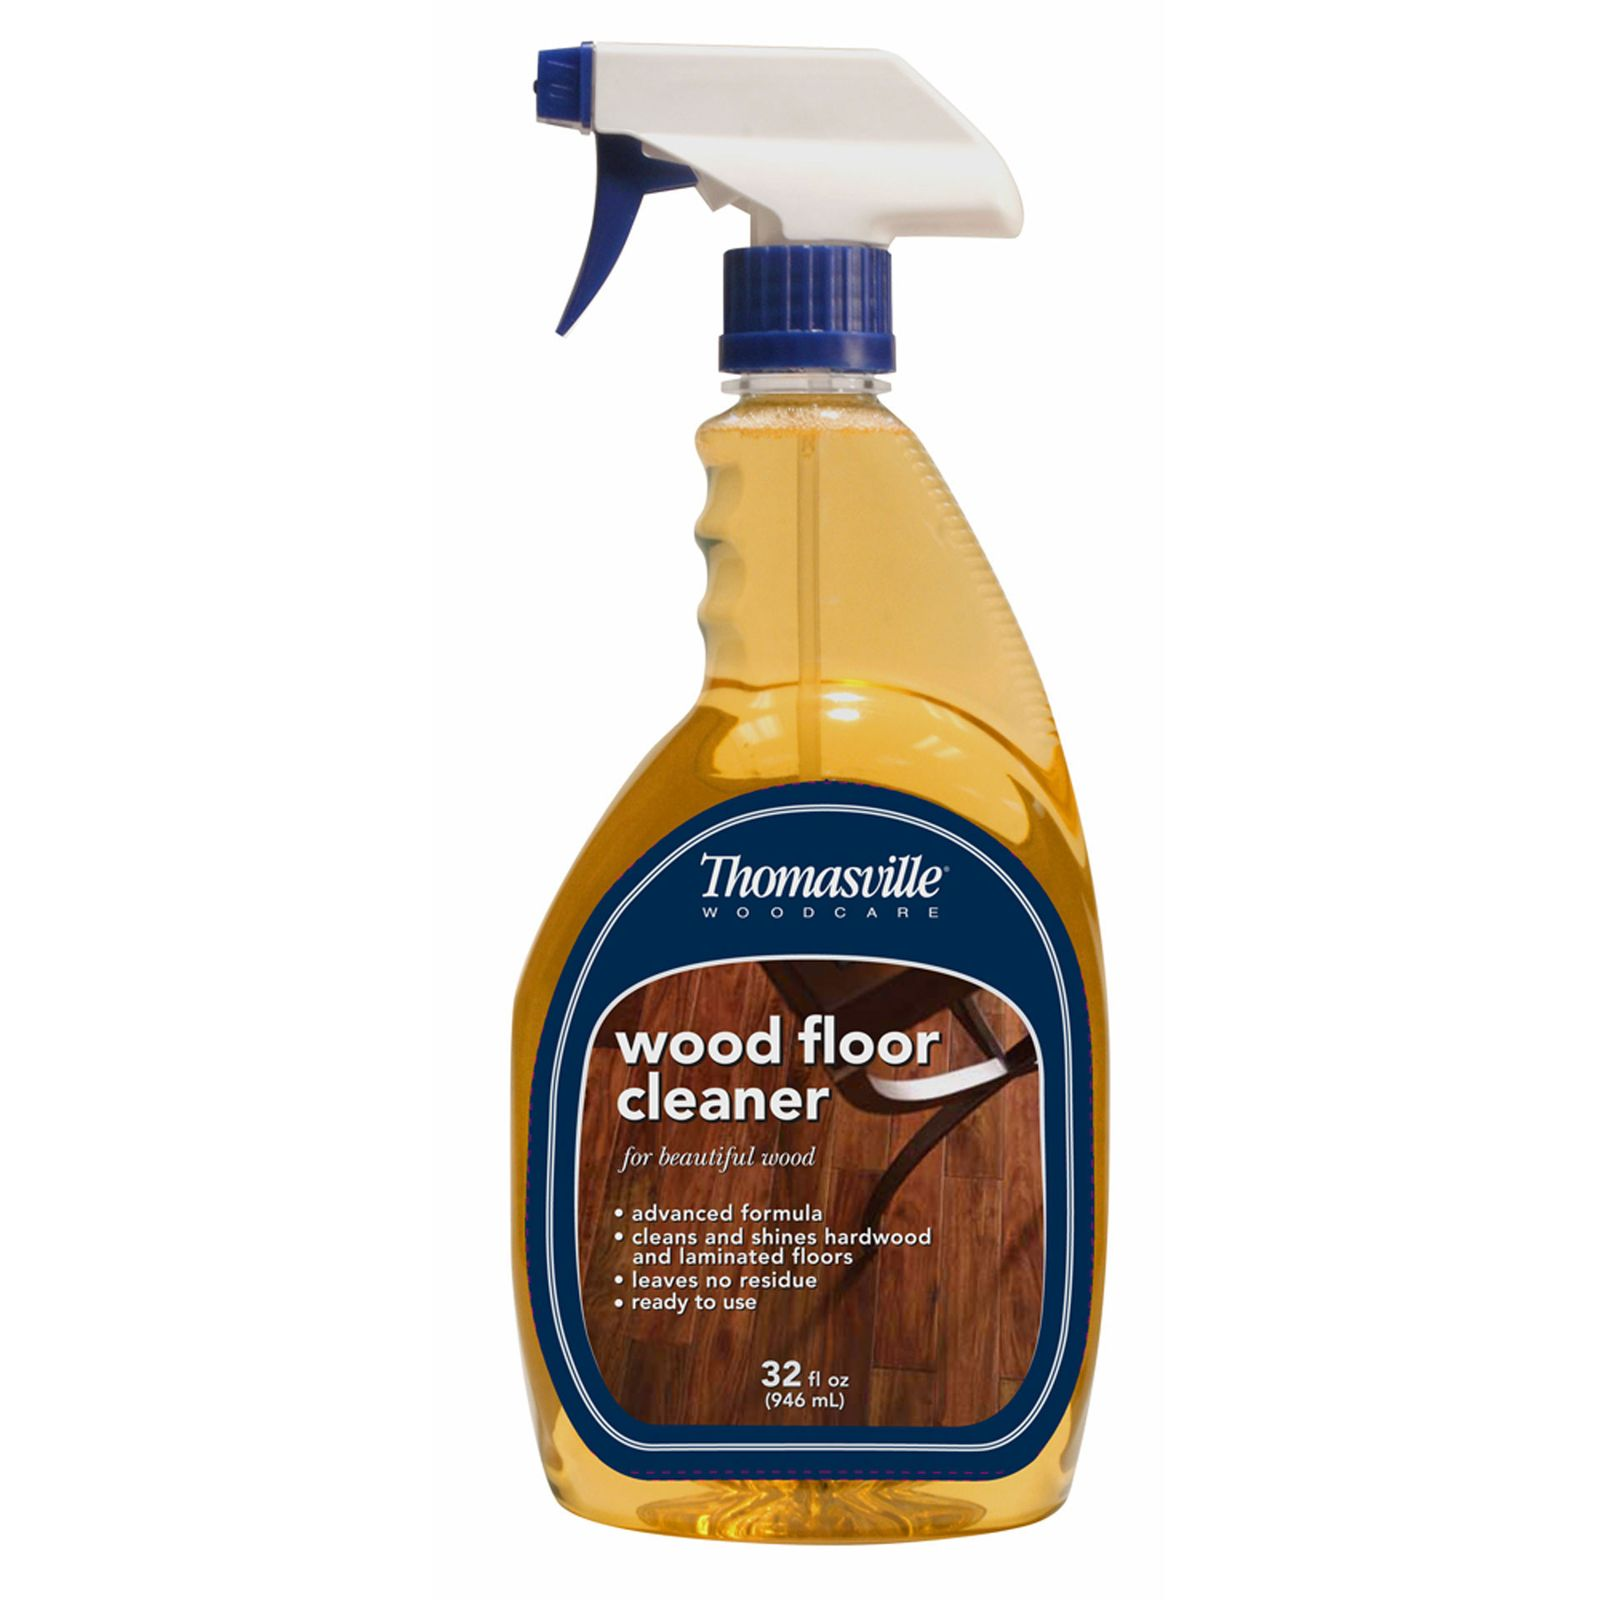 Thomasville wood floor cleaner review for Flooring products